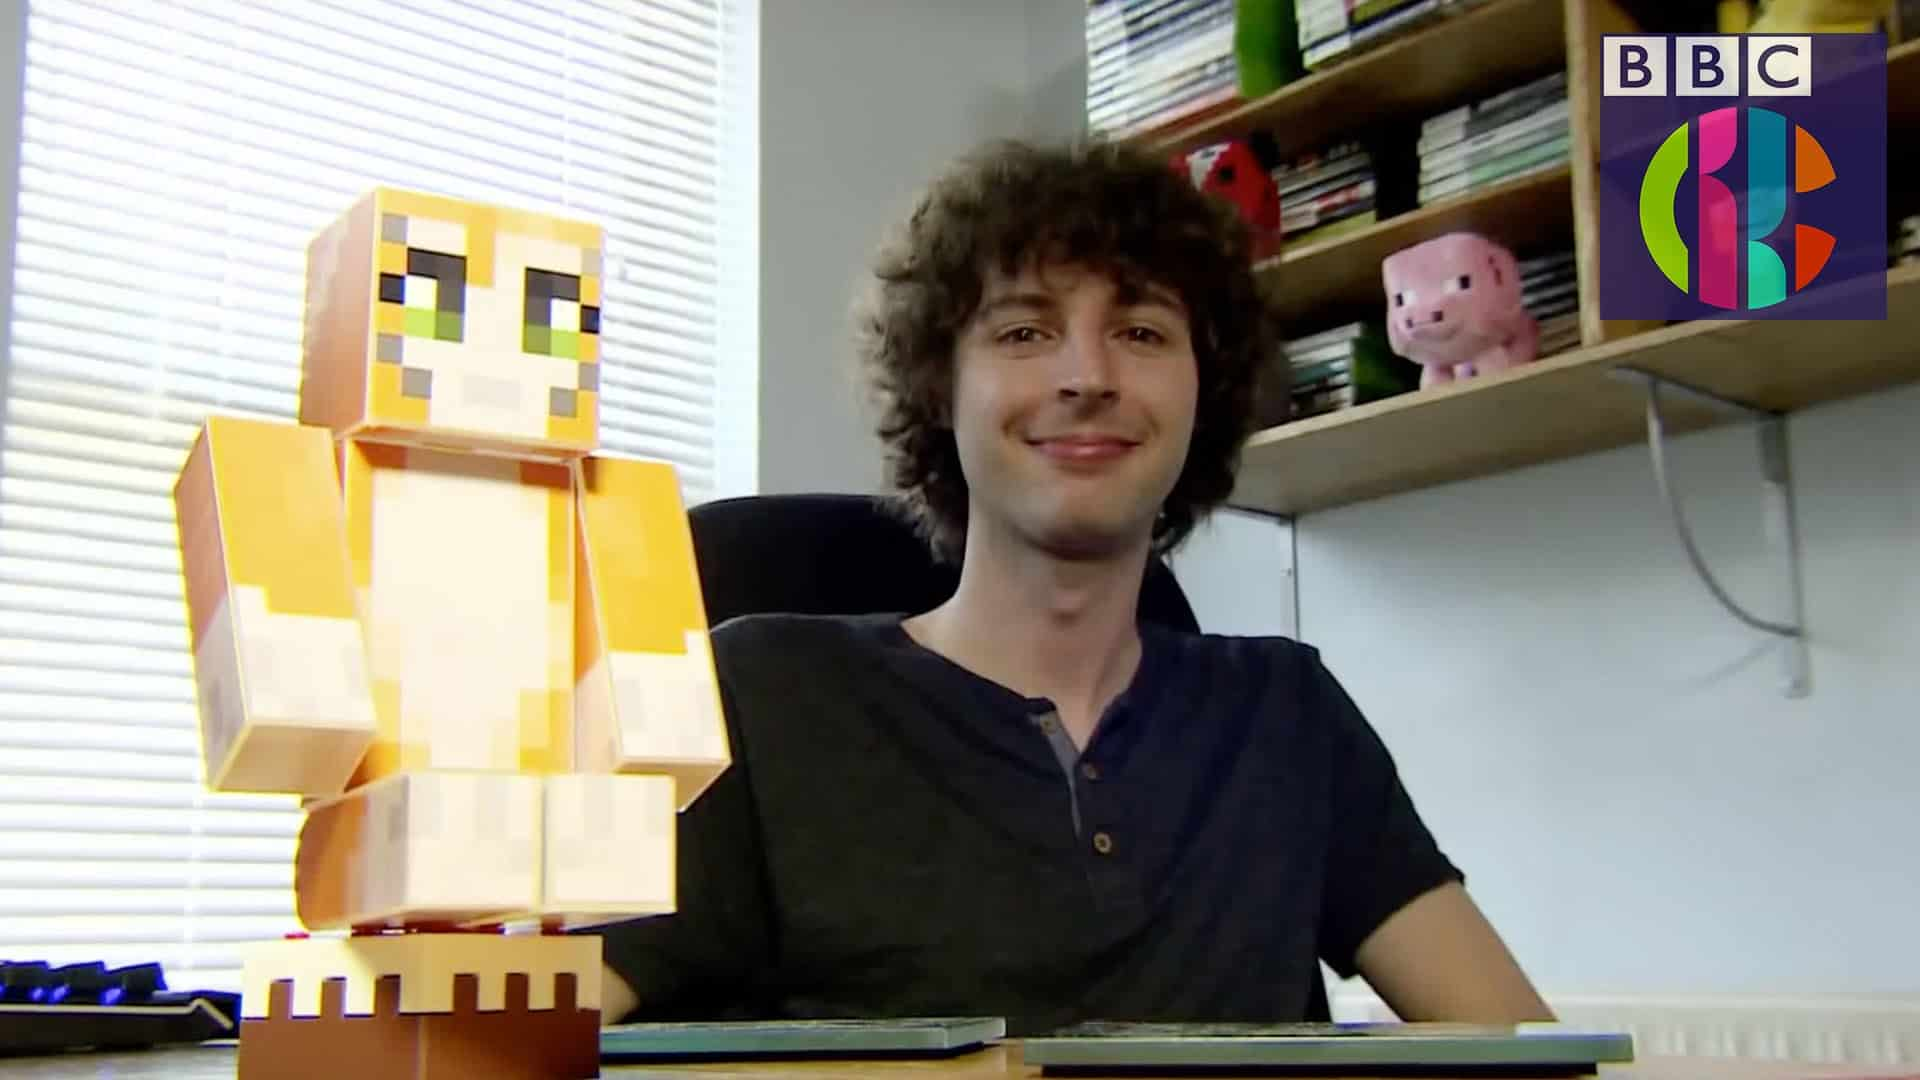 What Microphone Does Stampy Use? – 25pc com